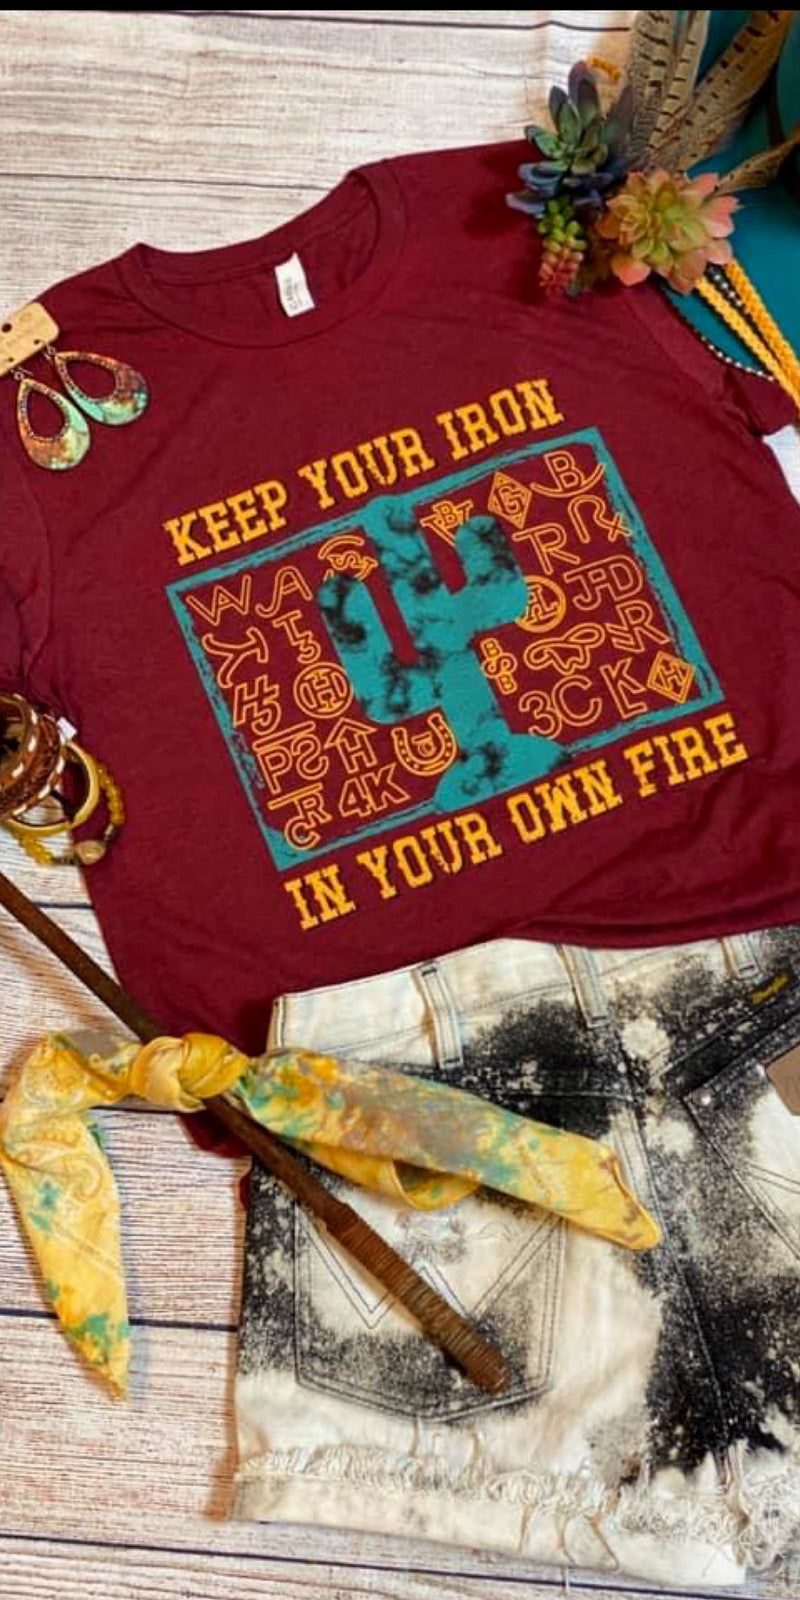 Keep Your Iron In Your Own Fire Top - Also in Plus Size